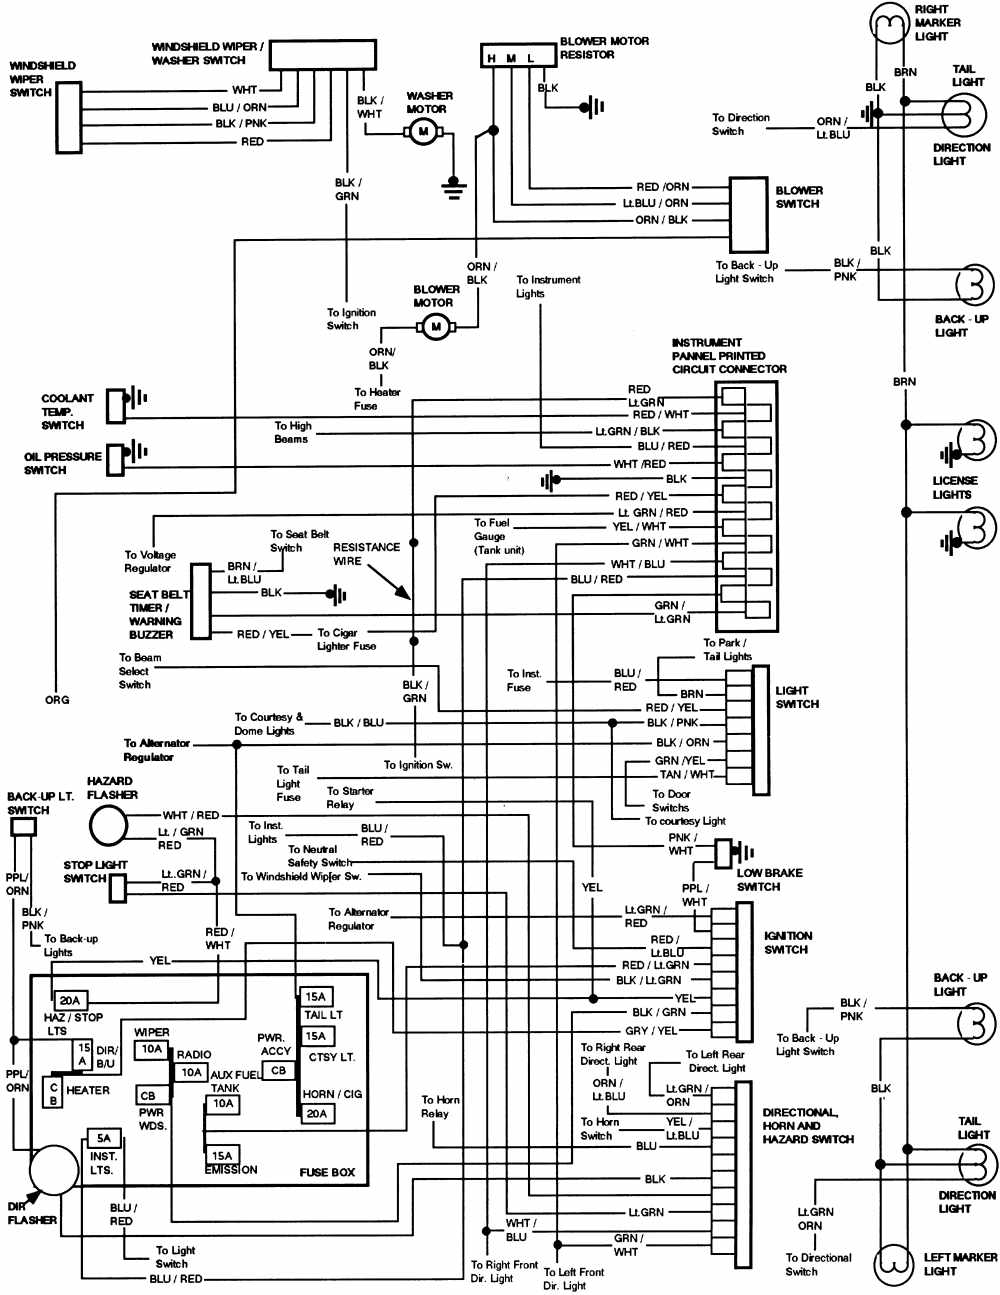 ledningsdiagram for 1972 ford mustang